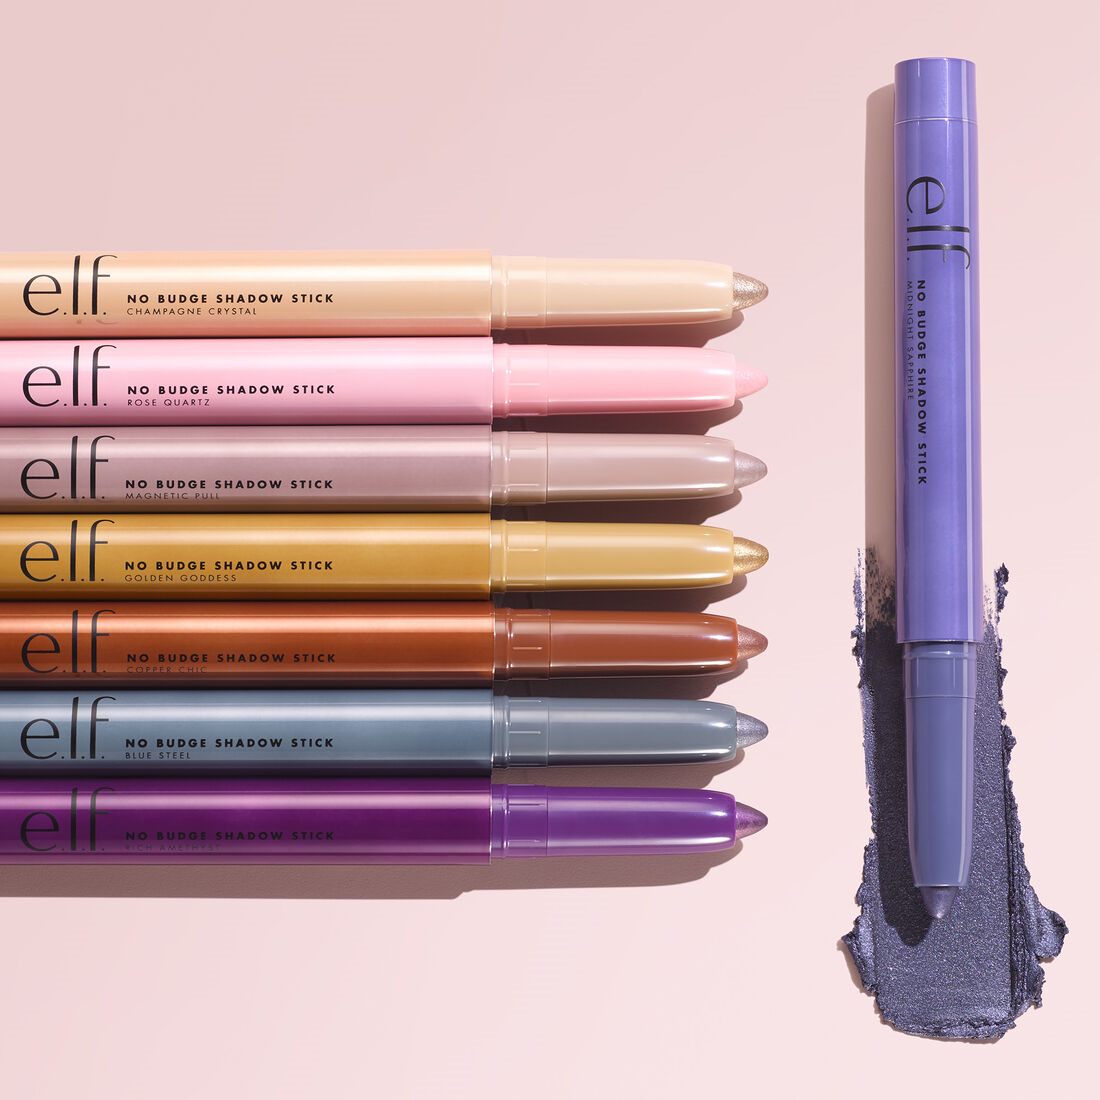 ELF No Budge Shadow Stick Collection